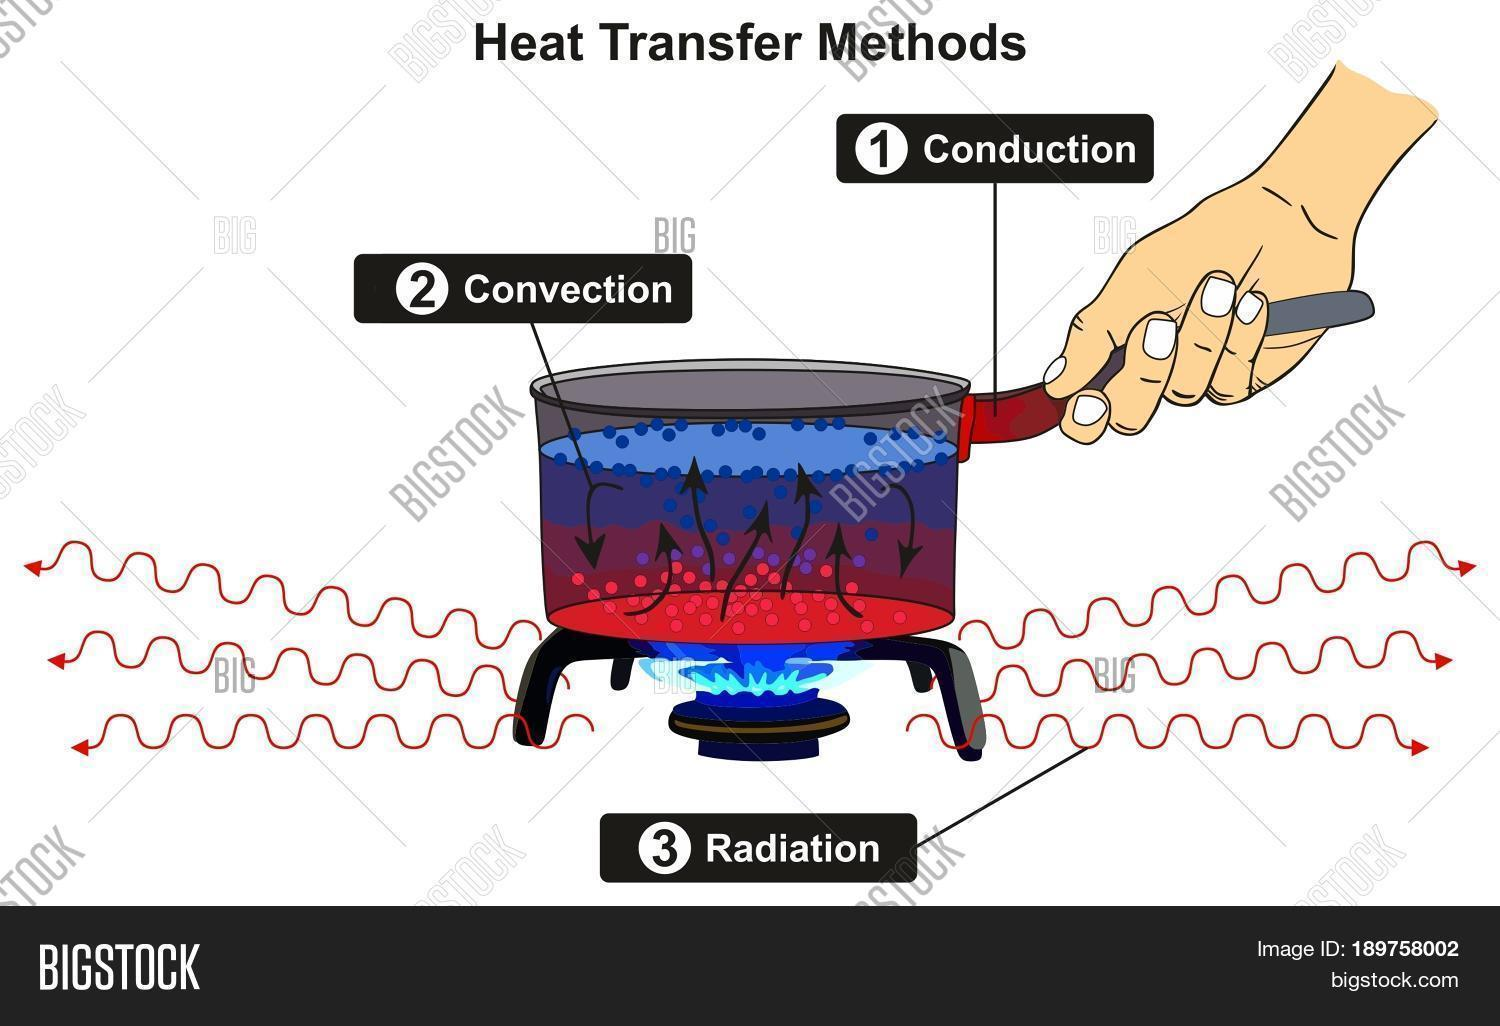 Heat Transfer Methods Infographic Diagram Including Conduction